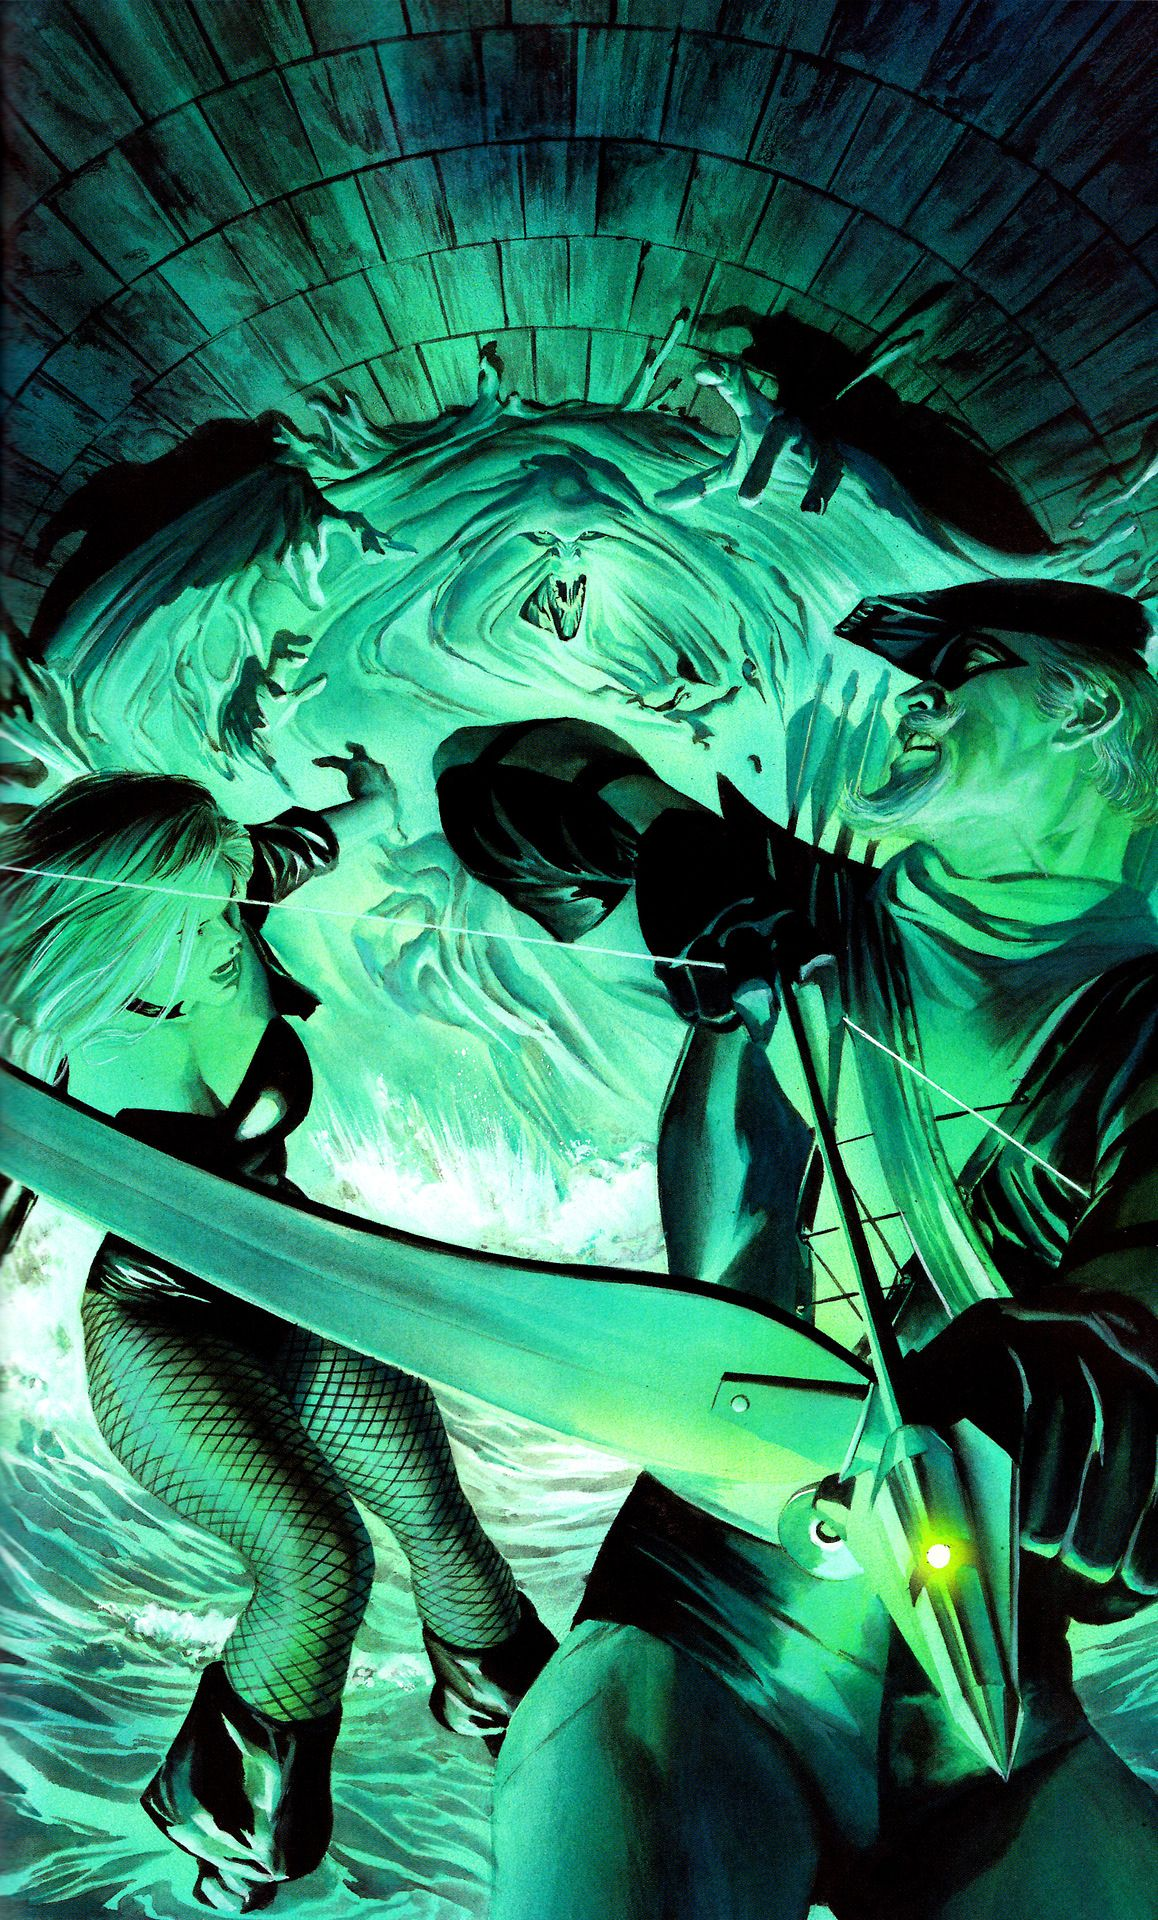 Green Arrow & Black Canary vs. Clayface by Alex Ross